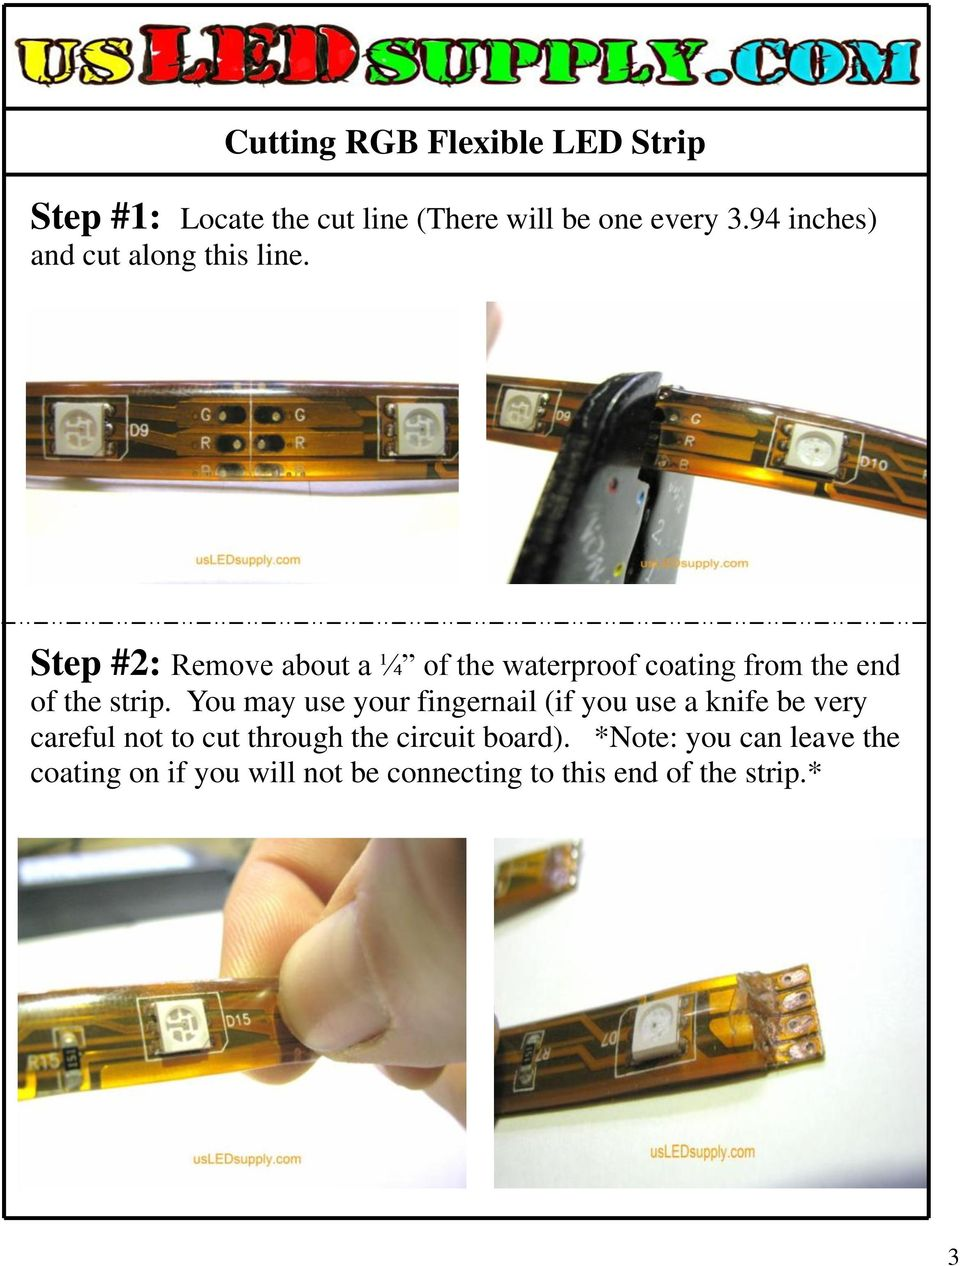 Step #2: Remove about a ¼ of the waterproof coating from the end of the strip.